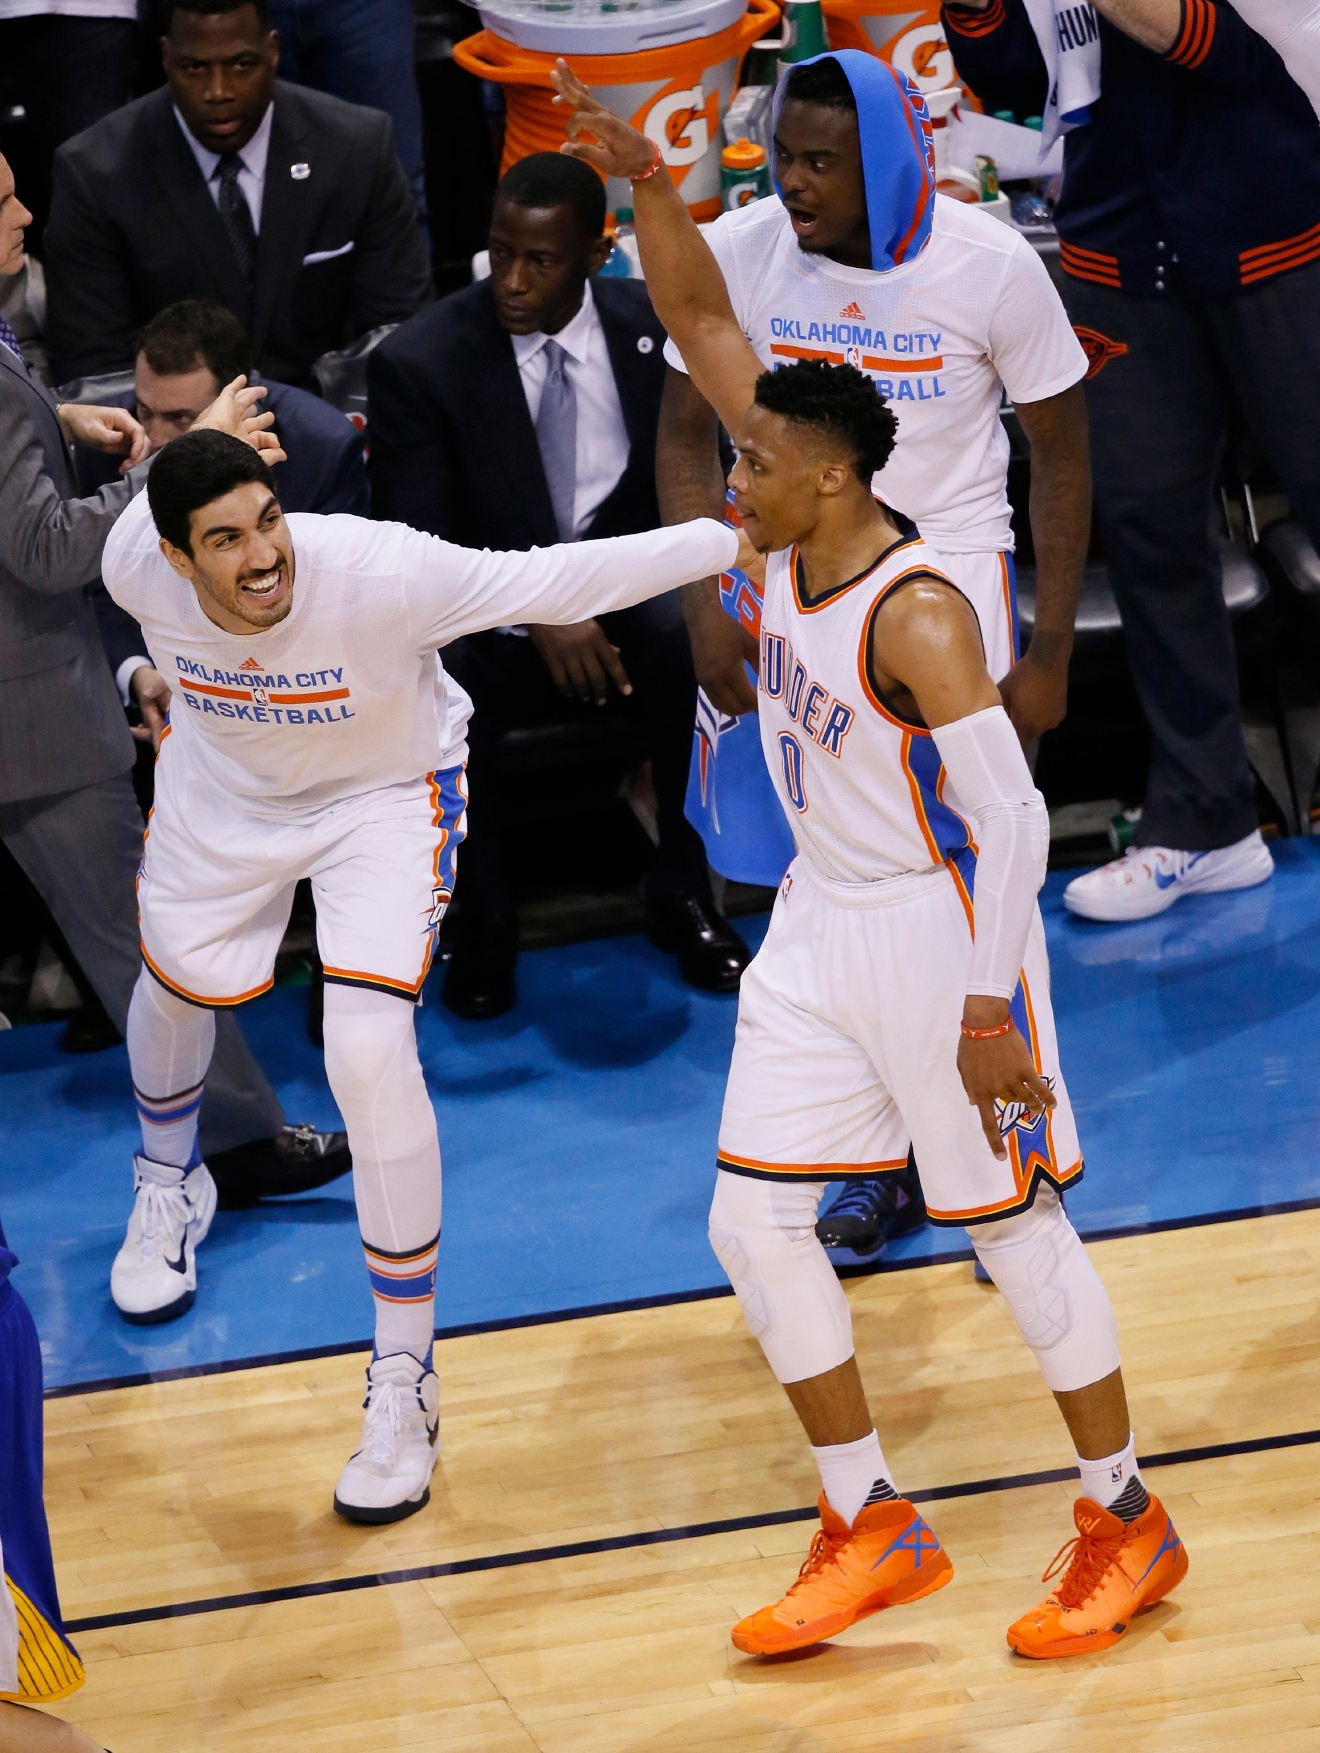 Oklahoma City Thunder guard Russell Westbrook (0) celebrates with teammate Enes Kanter, left, following a basket against the Golden State Warriors in Game 4 of the NBA basketball Western Conference finals in Oklahoma City, Tuesday, May 24,, 2016. The Thunder won 118-94. (AP Photo/Sue Ogrocki)